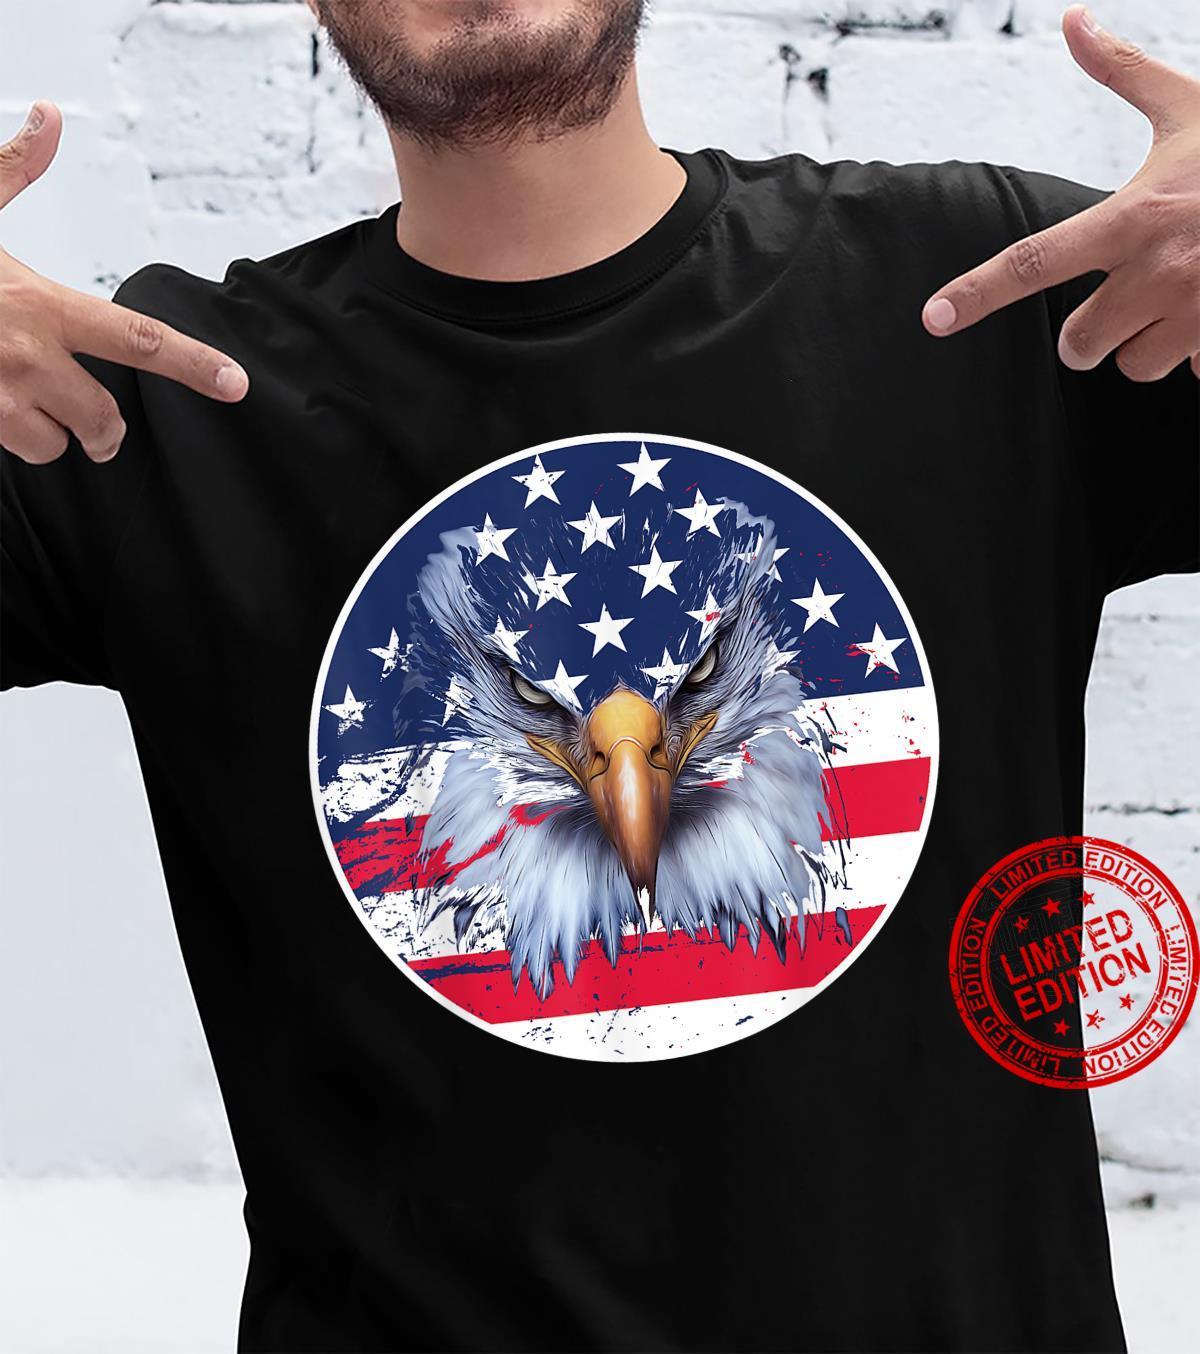 USA American Flag Patriotic Eagle 4th of July Shirt